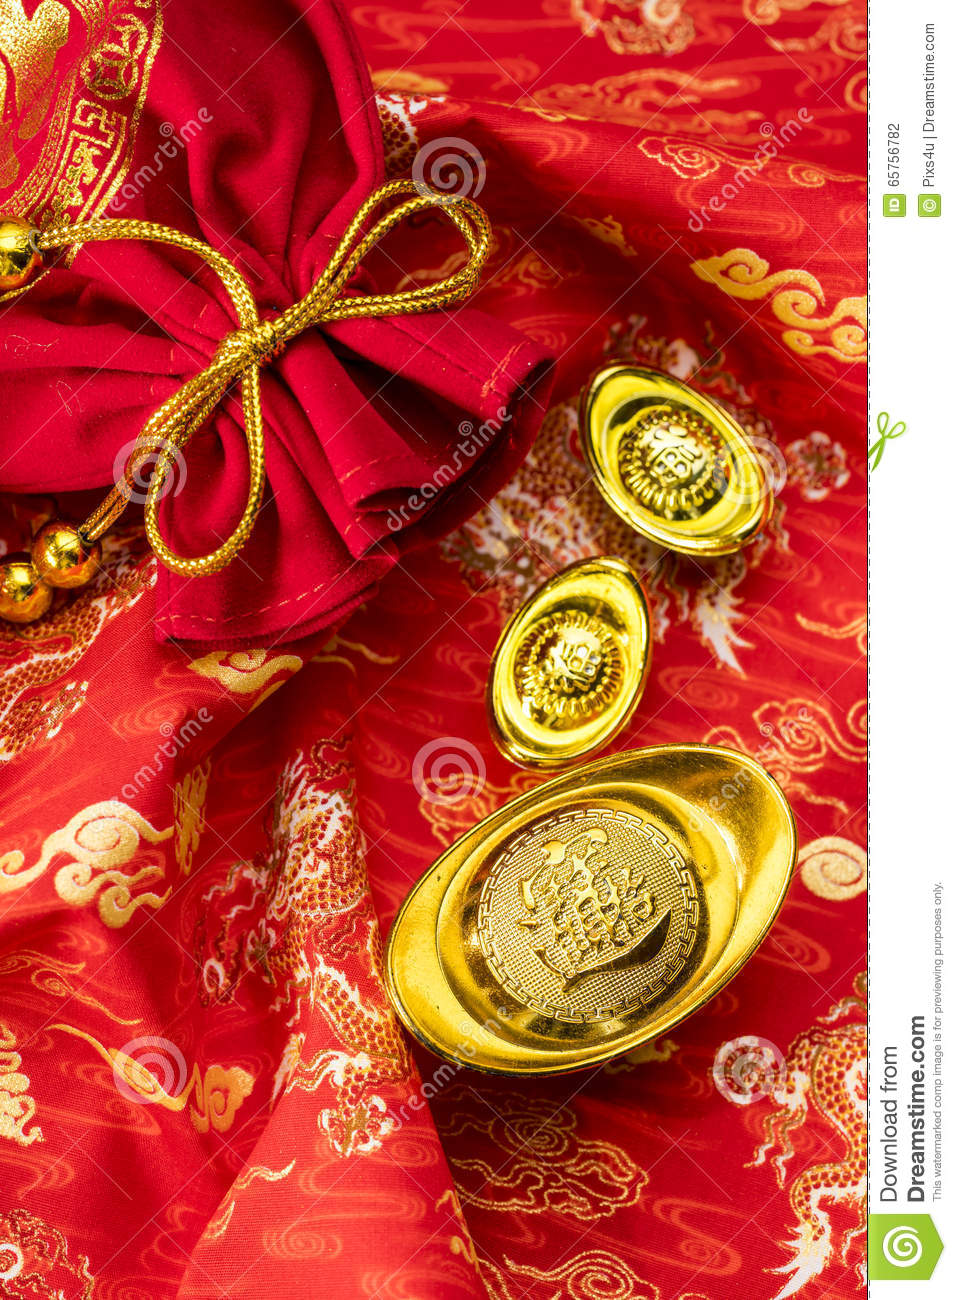 Chinese New Year Decorations And Auspicious Ornaments On ...